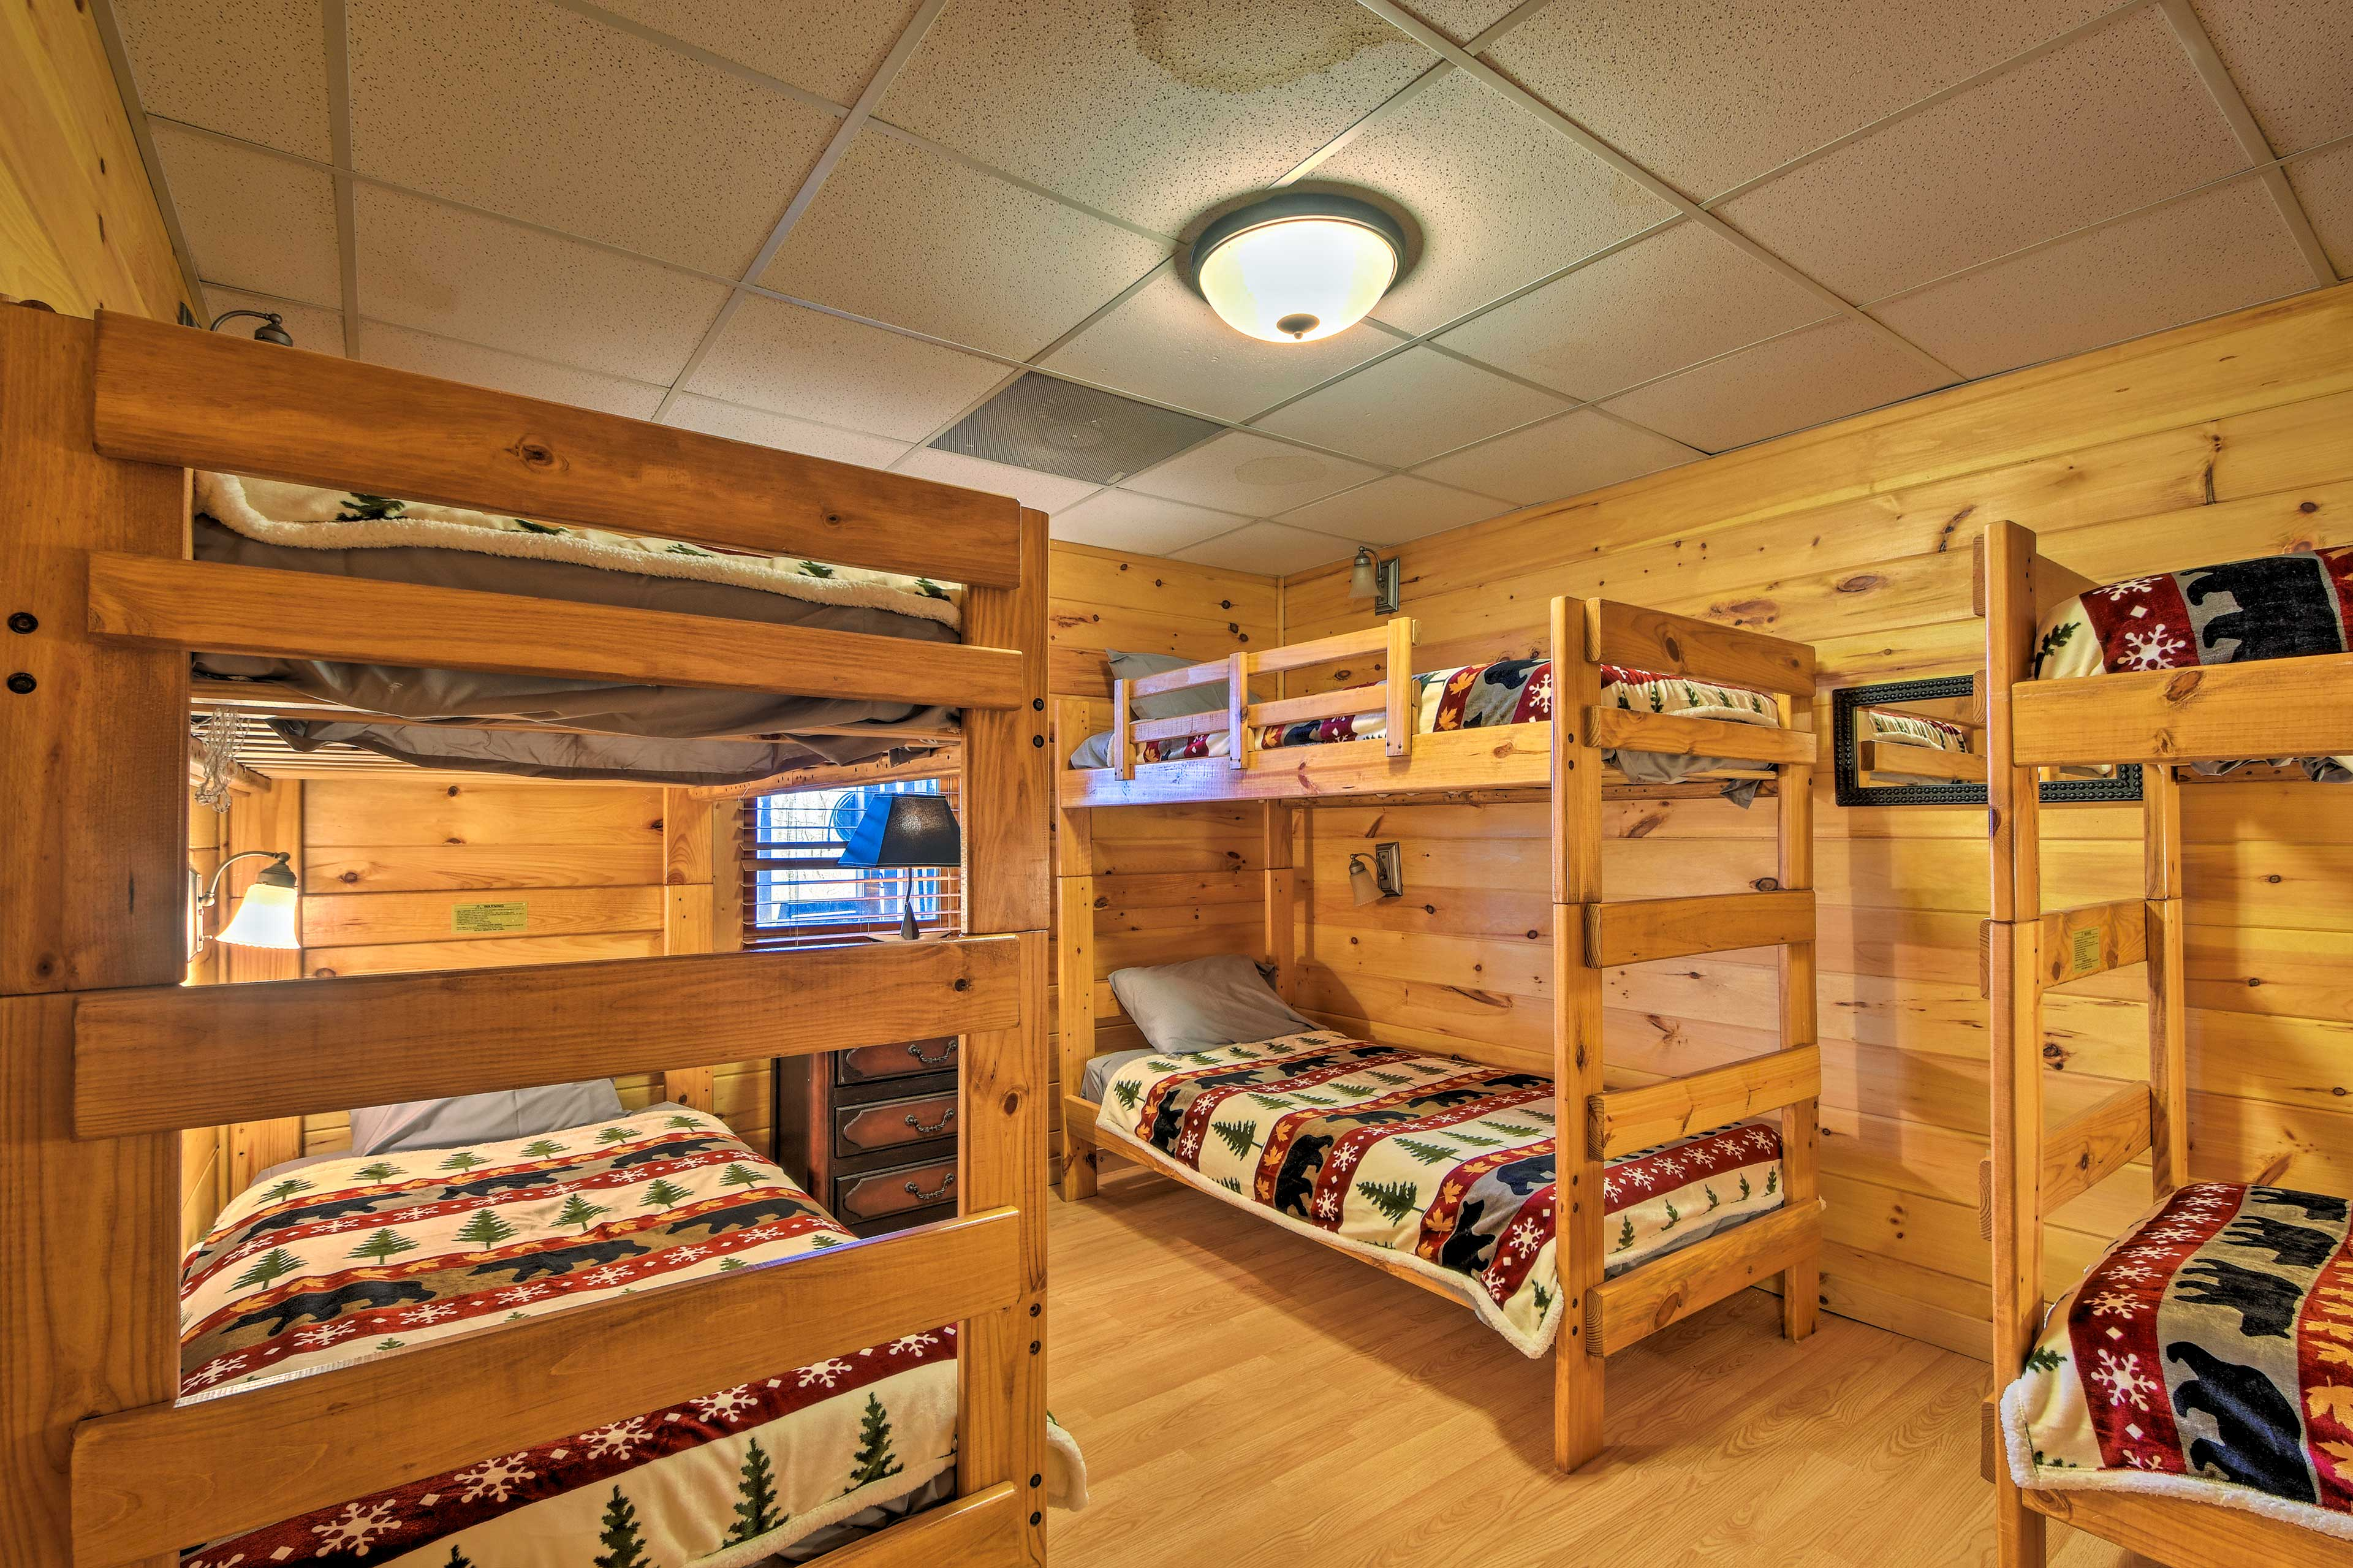 The bunk room features 3 twin bunk beds to sleep 6 guests!